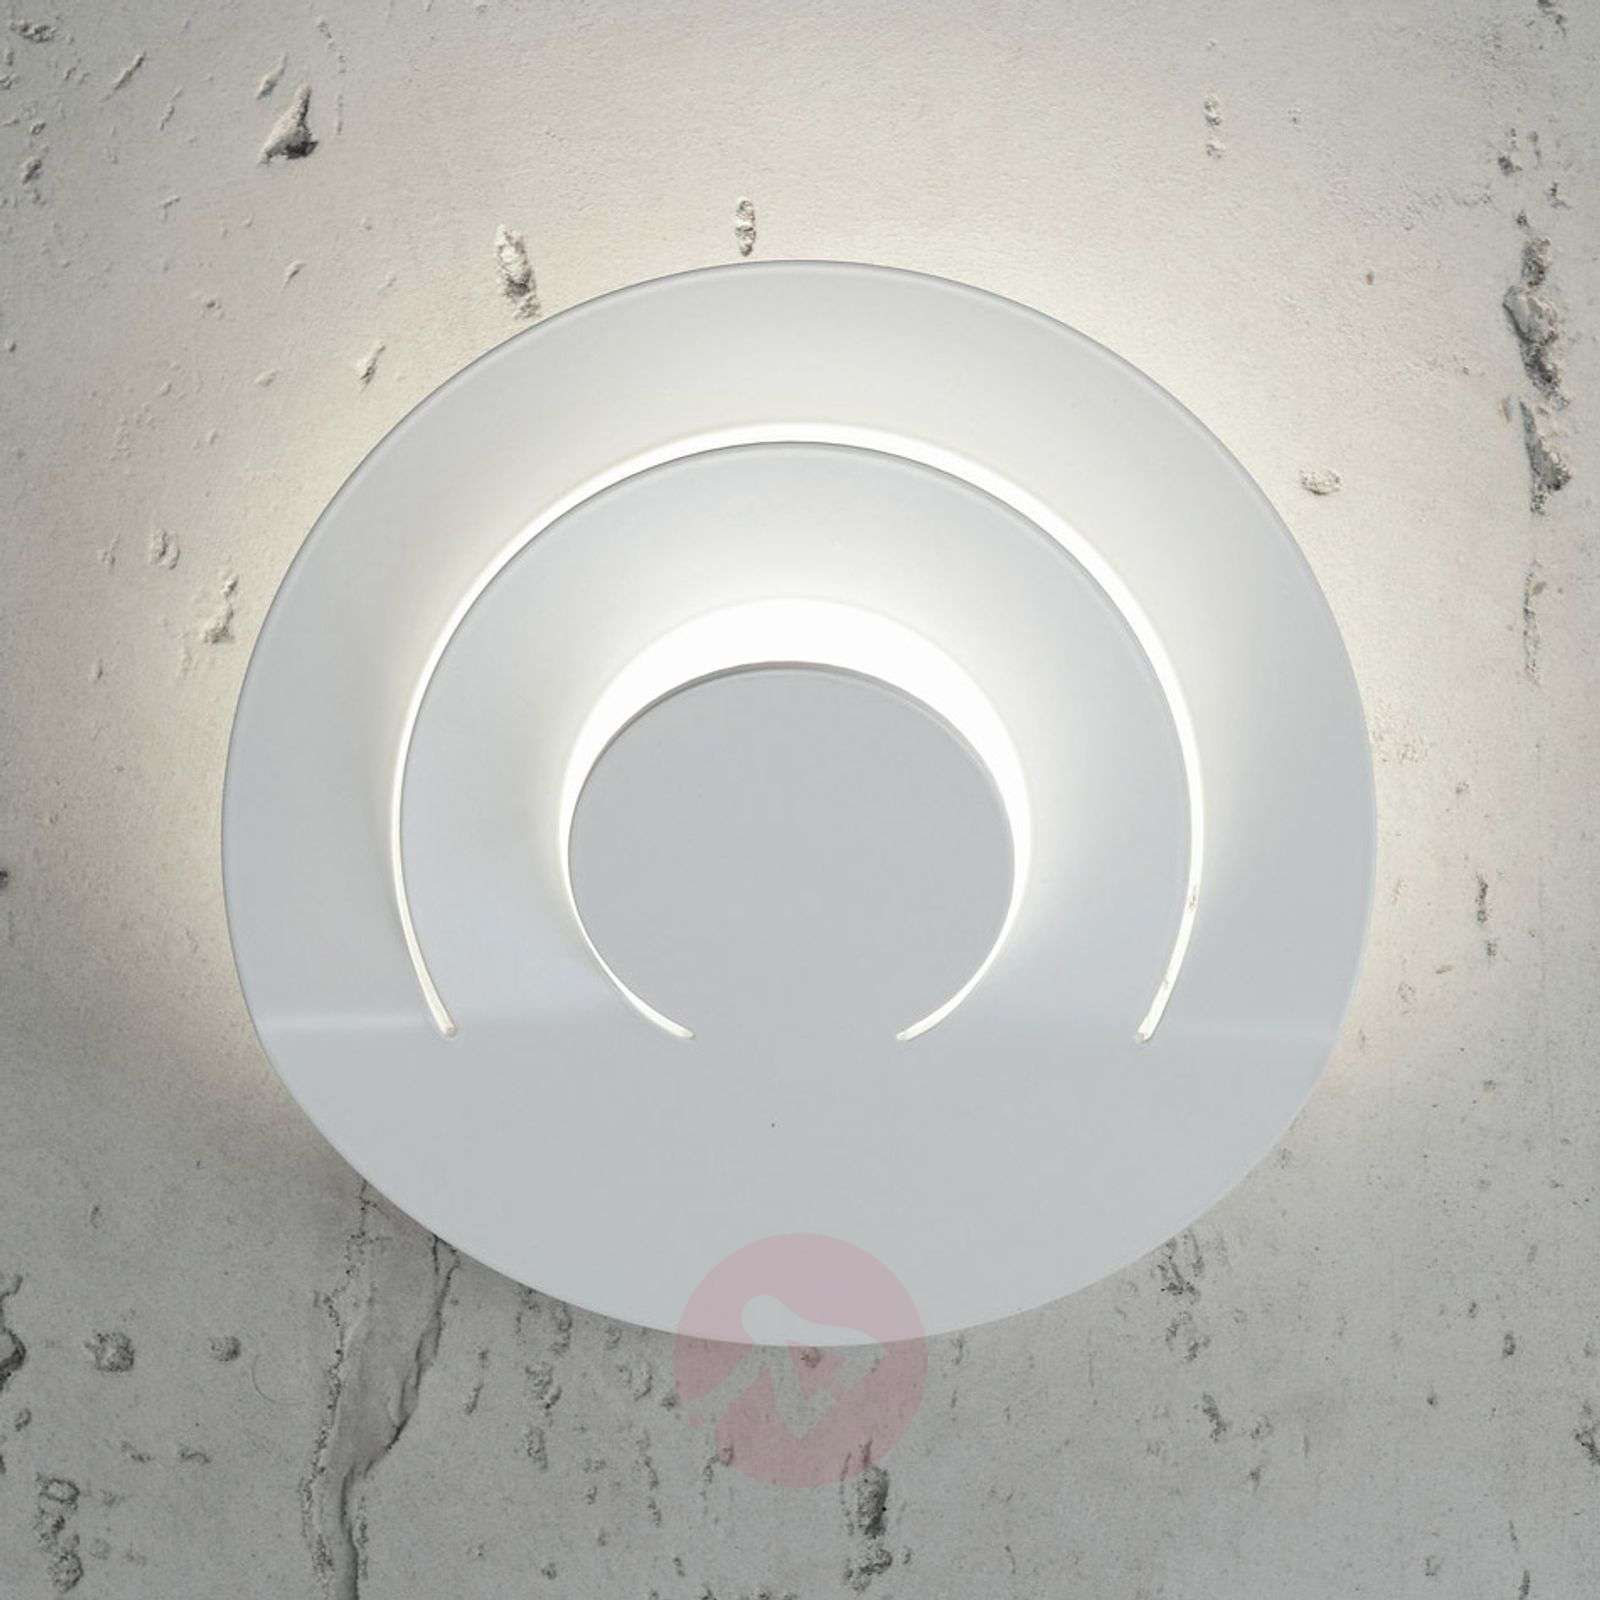 LED wall light Eona in an extravagant design-2000353-01